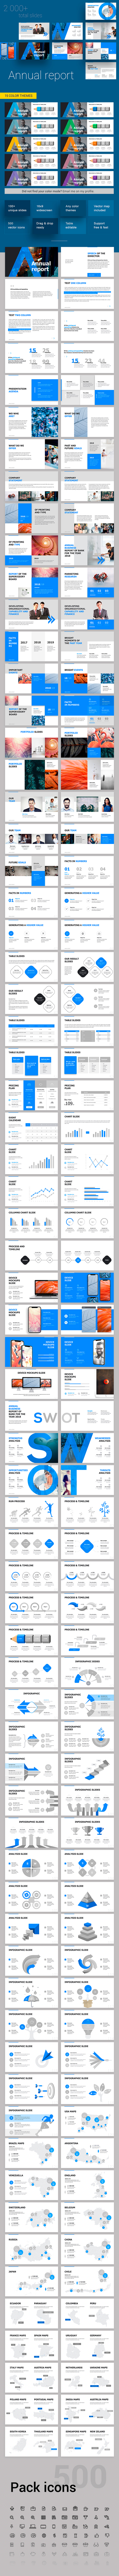 Annual Report Keynote Template - Finance Keynote Templates